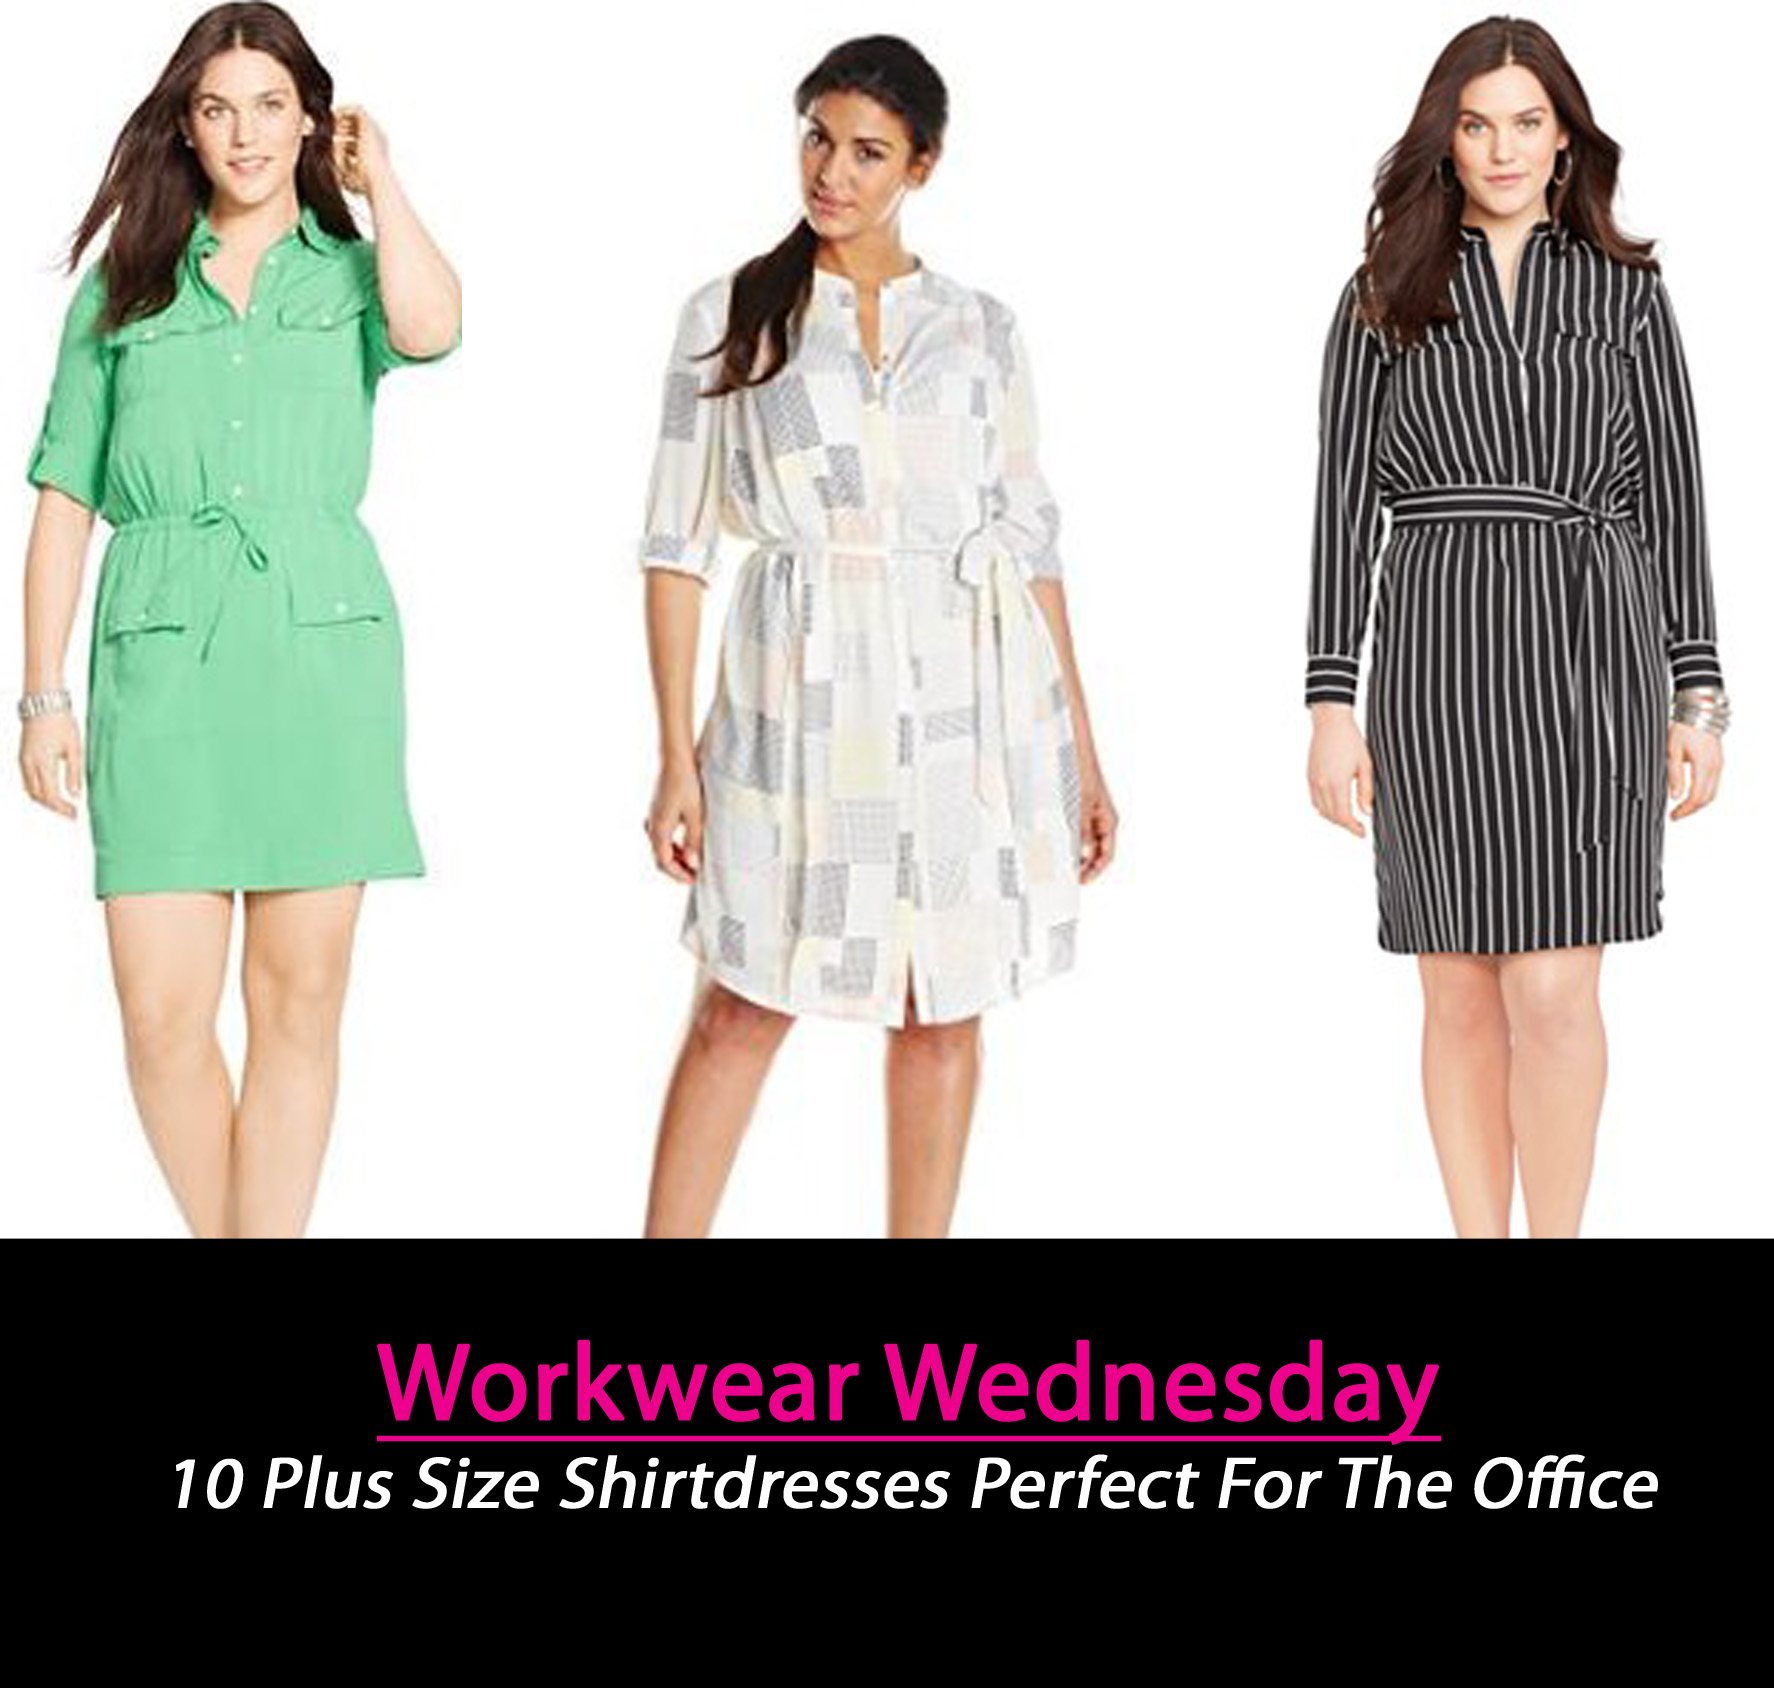 6c3e203cc70 10 Plus Size ShirtDresses Chic Enough To Take You From Work To ...